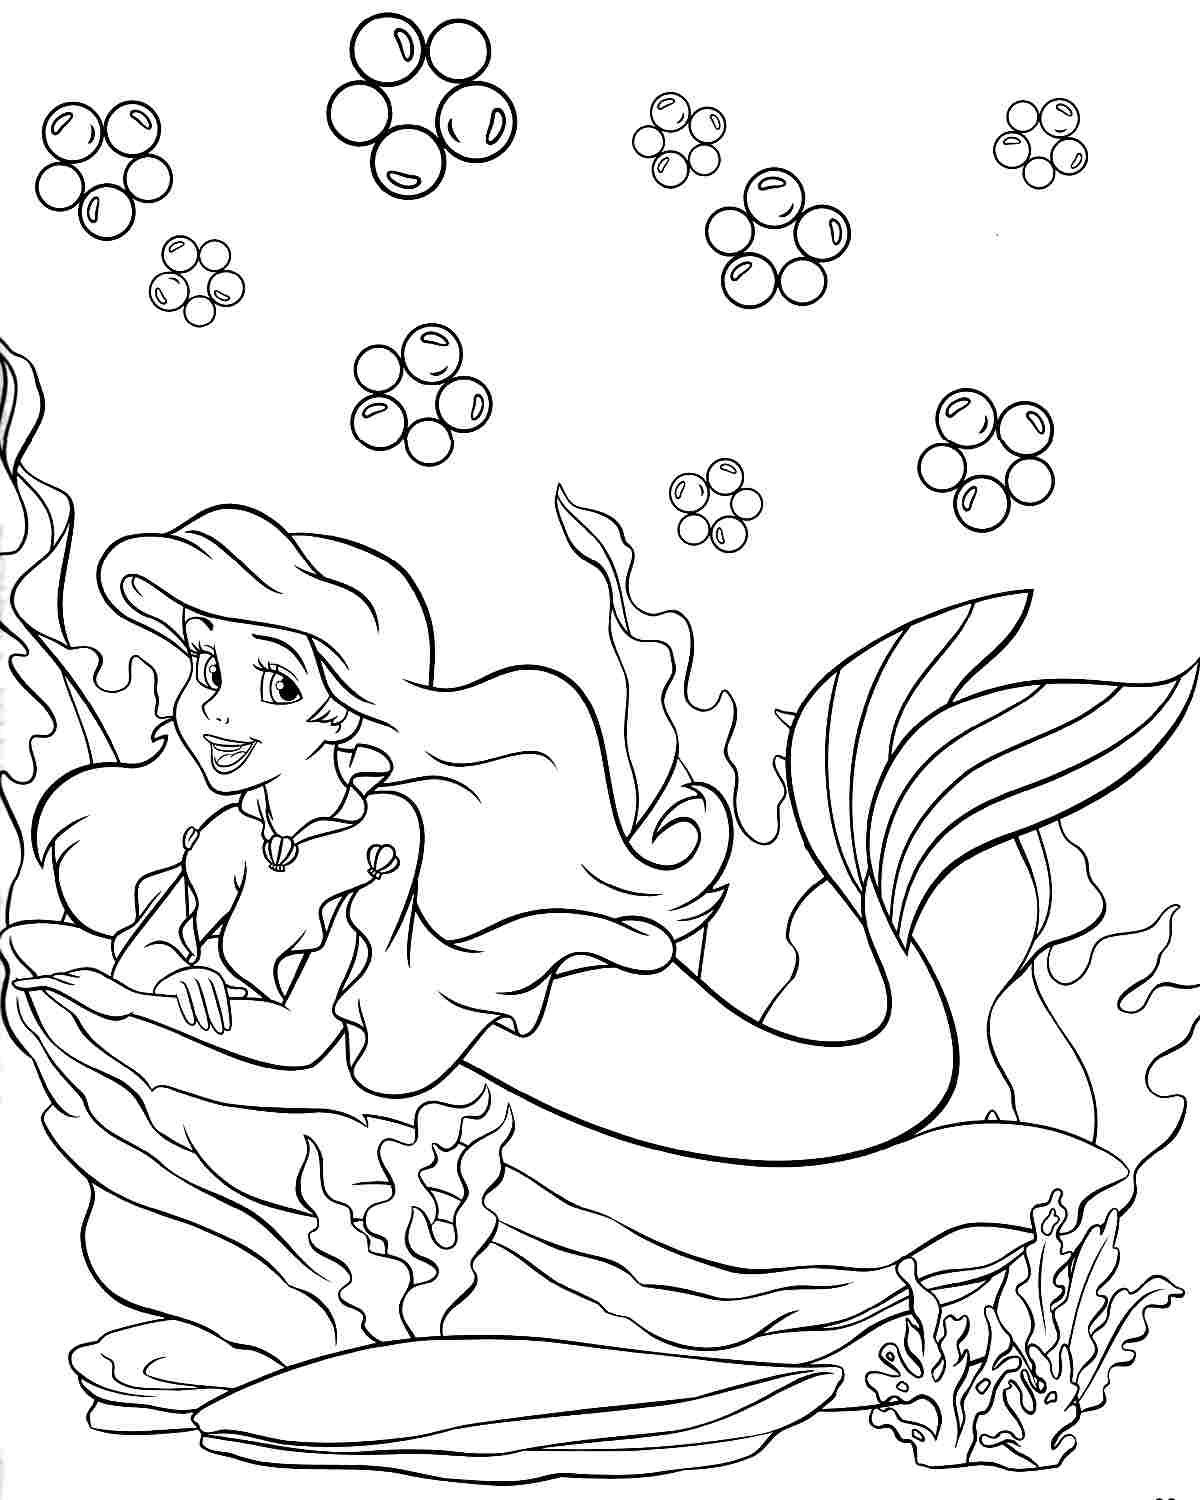 Free Printable Disney Princess Christmas Coloring Pages With Fresh Design Sheet